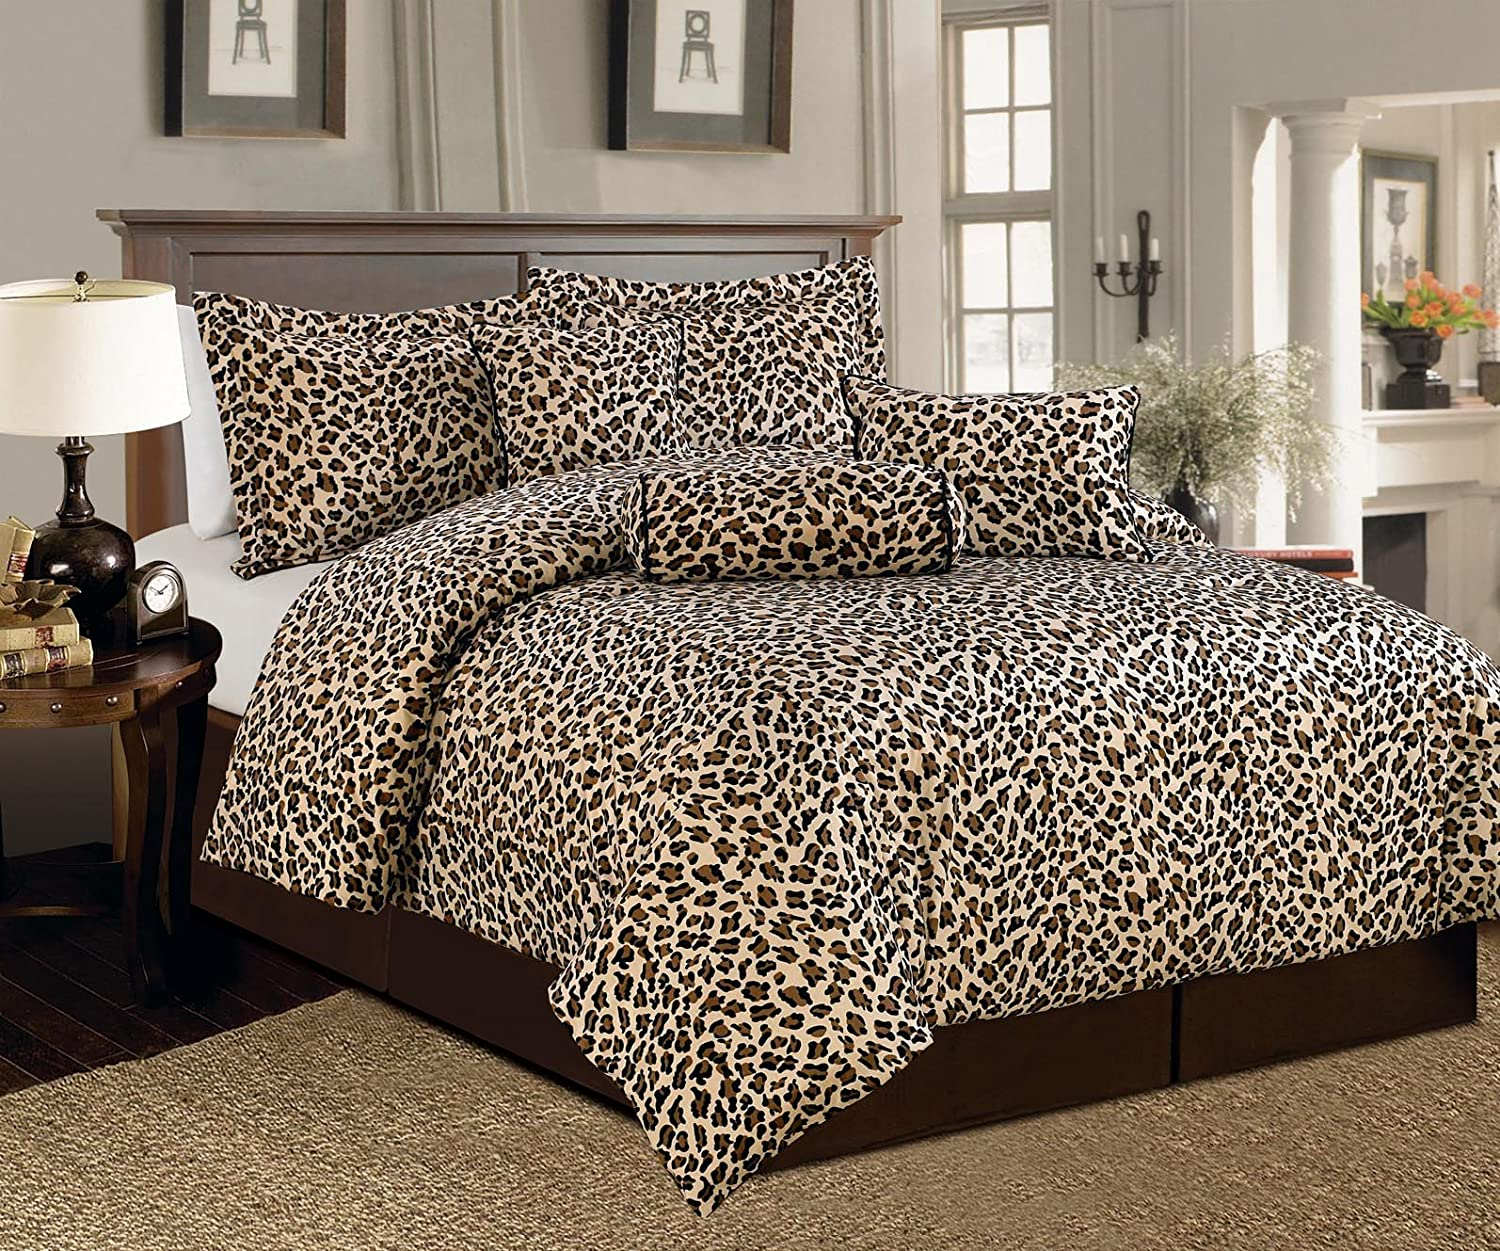 Animal print bedroom sets - Amazon com legacy decor beautiful 7 pc leopard print faux fur king size comforter bedding set home kitchen